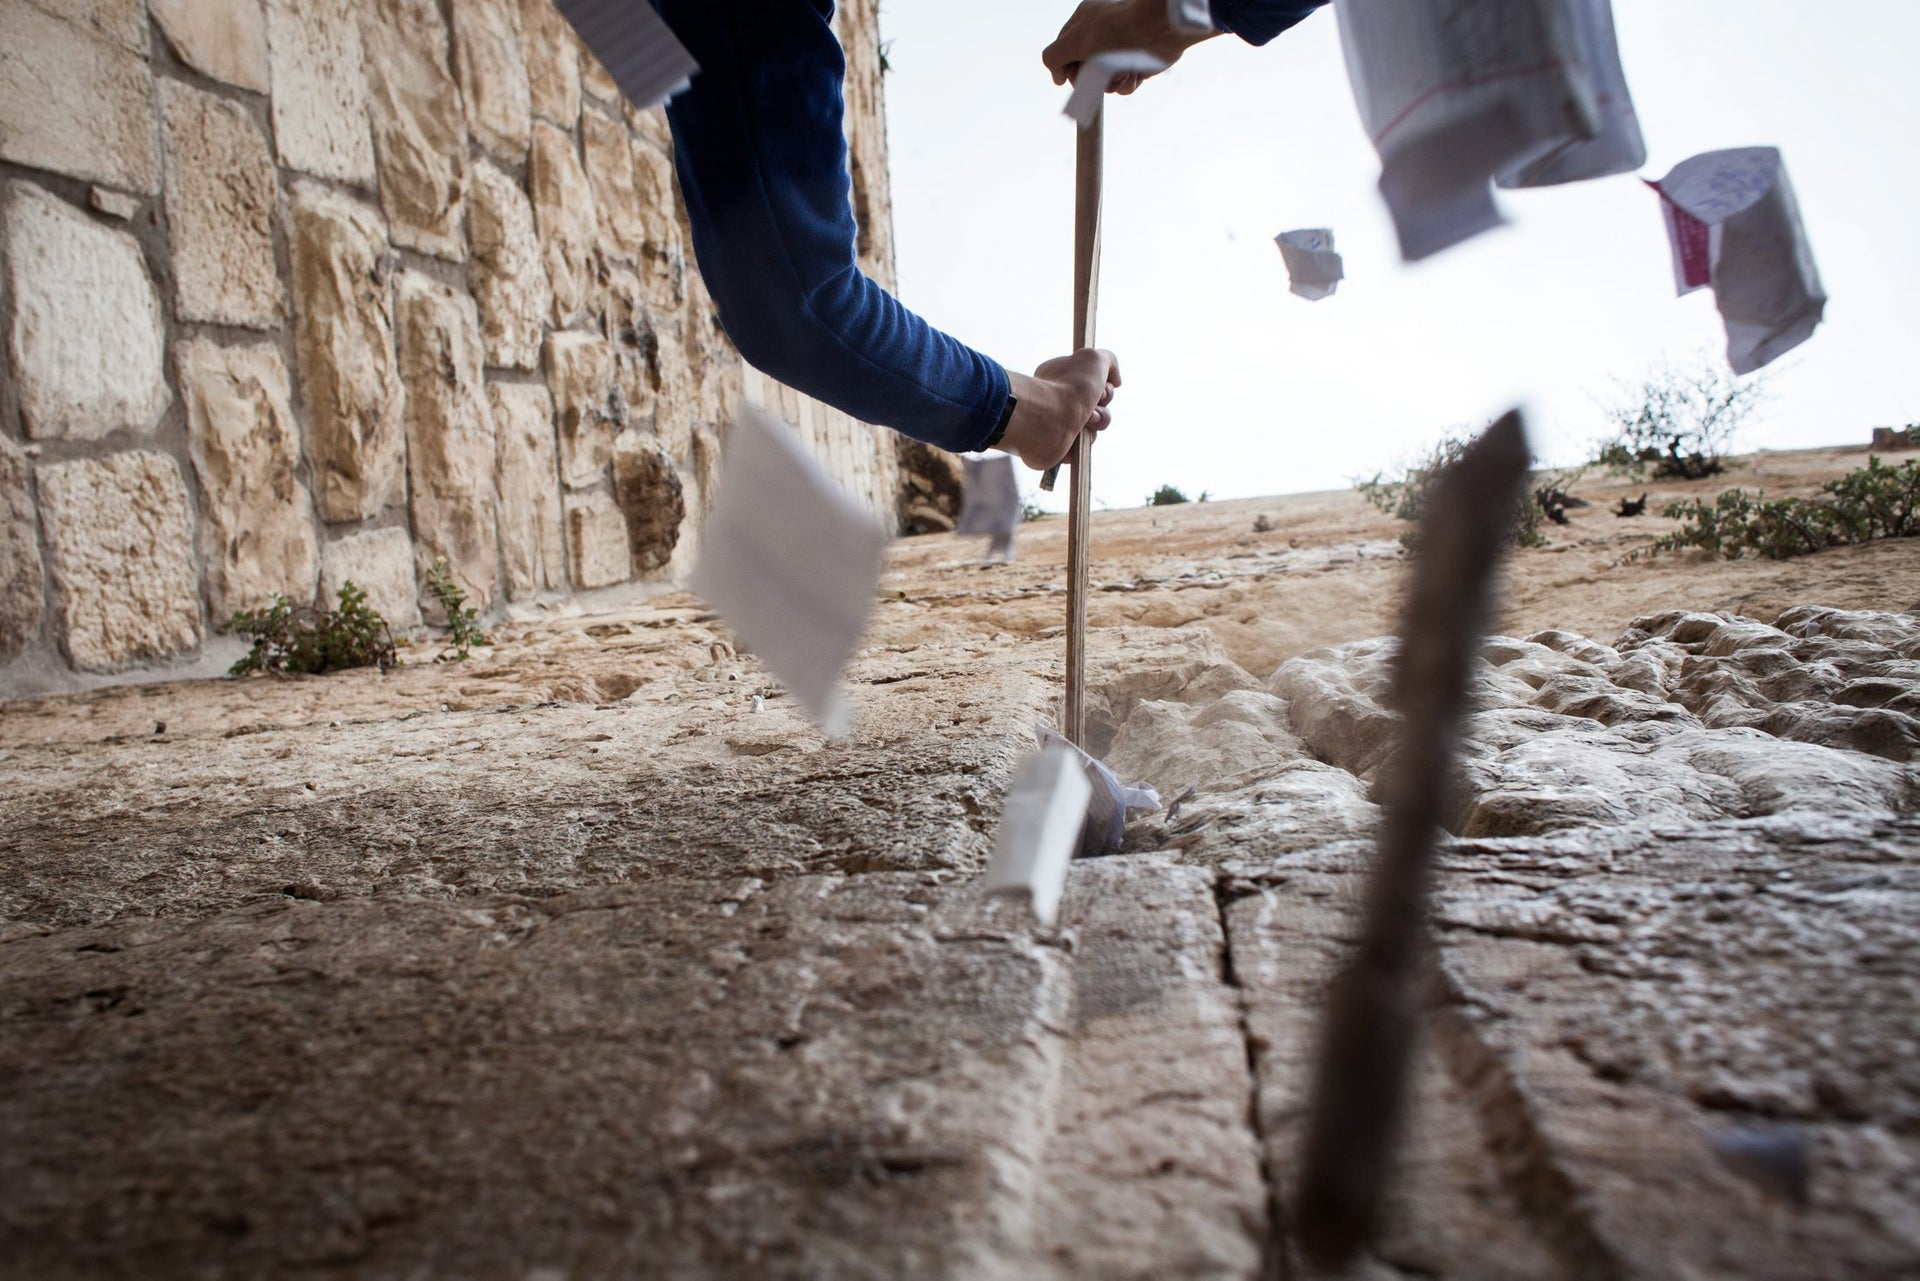 Prayer notes being cleaned out of the stones of the Western Wall in Jerusalem on April 12, 2016.